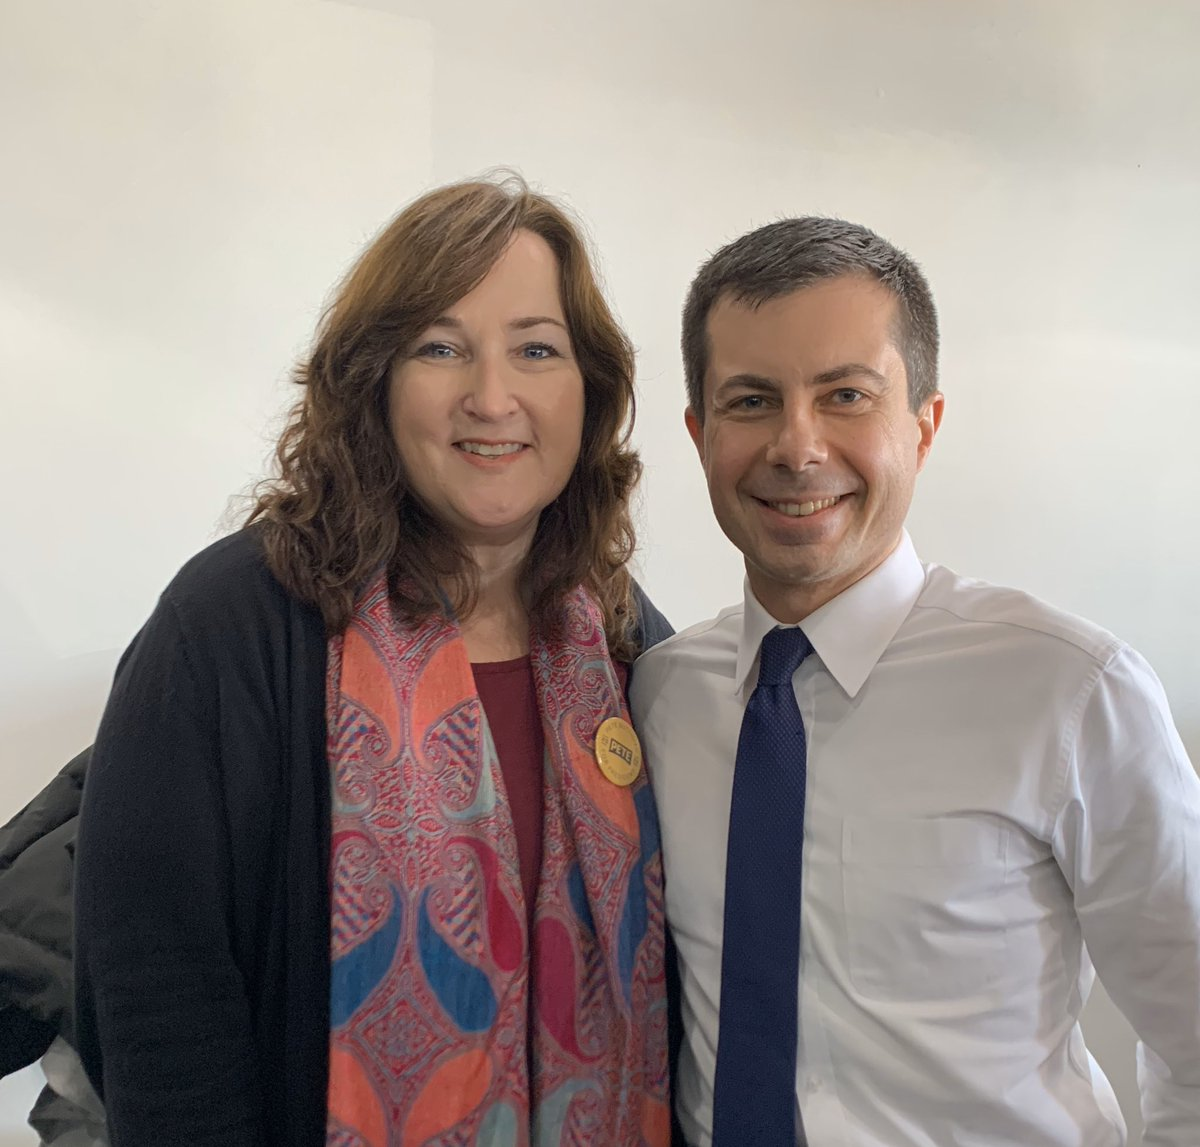 Happy Birthday @PeteButtigieg! Wishing you the best today and always. Thank you for your leadership, your compassion, your integrity, and your unwavering commitment to public service and to making a positive difference in the lives of all Americans. #HappyBirthdayPete #IACaucus <br>http://pic.twitter.com/4dNhNRhUuv